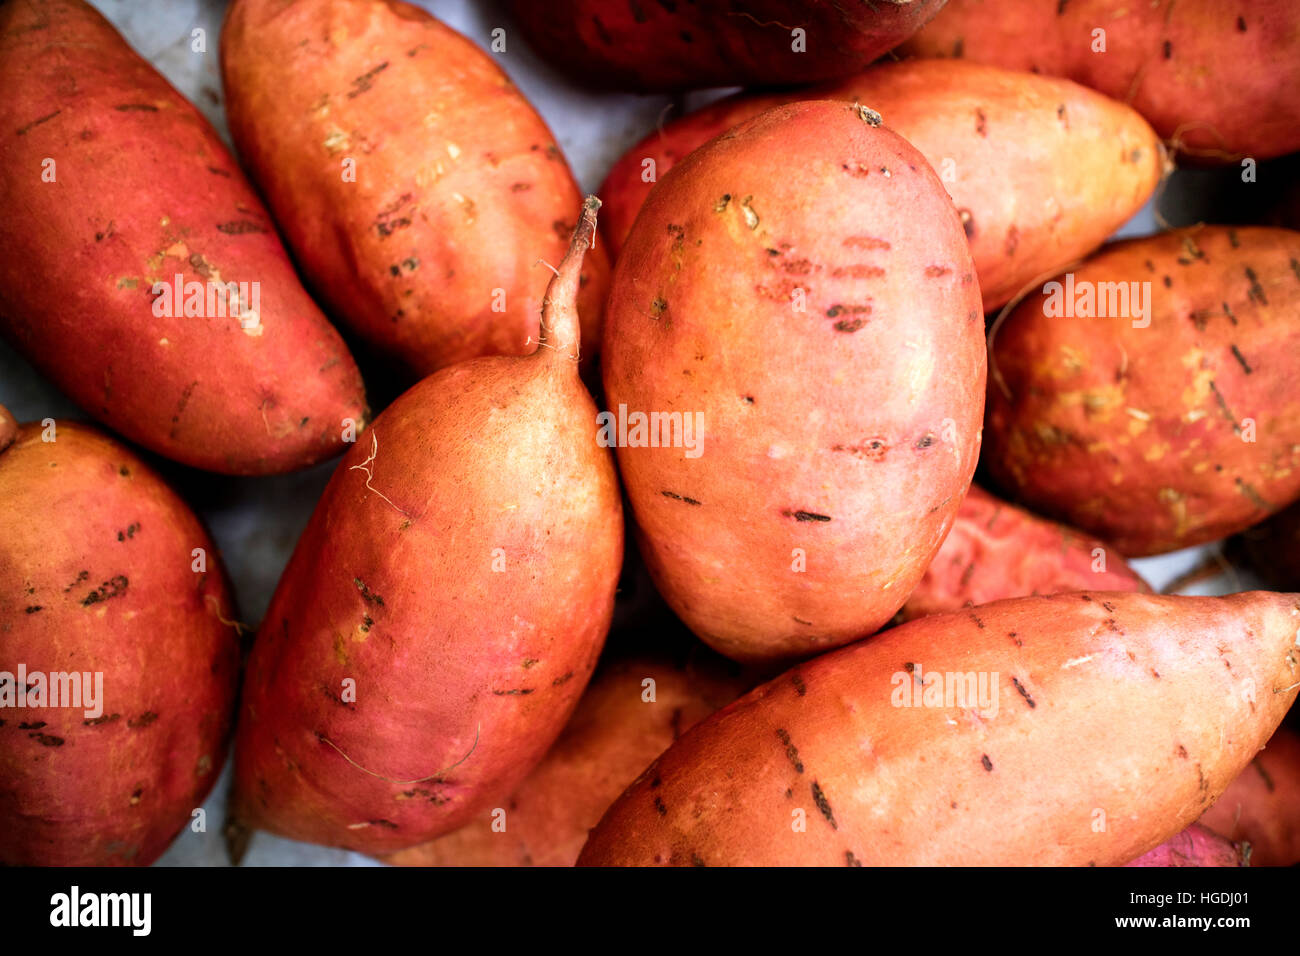 Sweet potato a dicotyledonous plant belonging to the morning glory family Convolvulaceae in farmers market - Stock Image